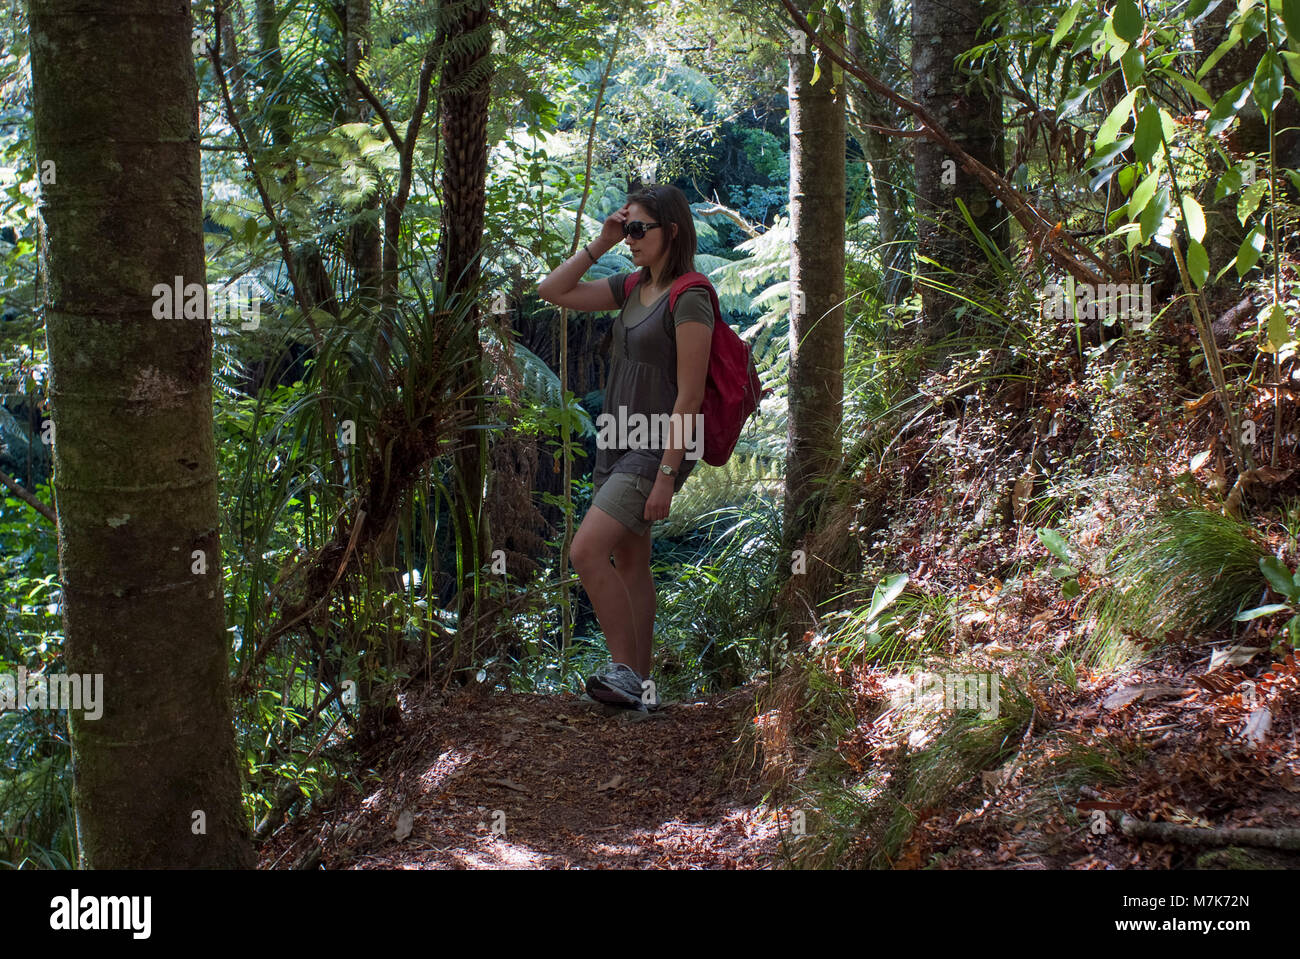 A young woman tramping through Kauri forest stops to look at the view. - Stock Image